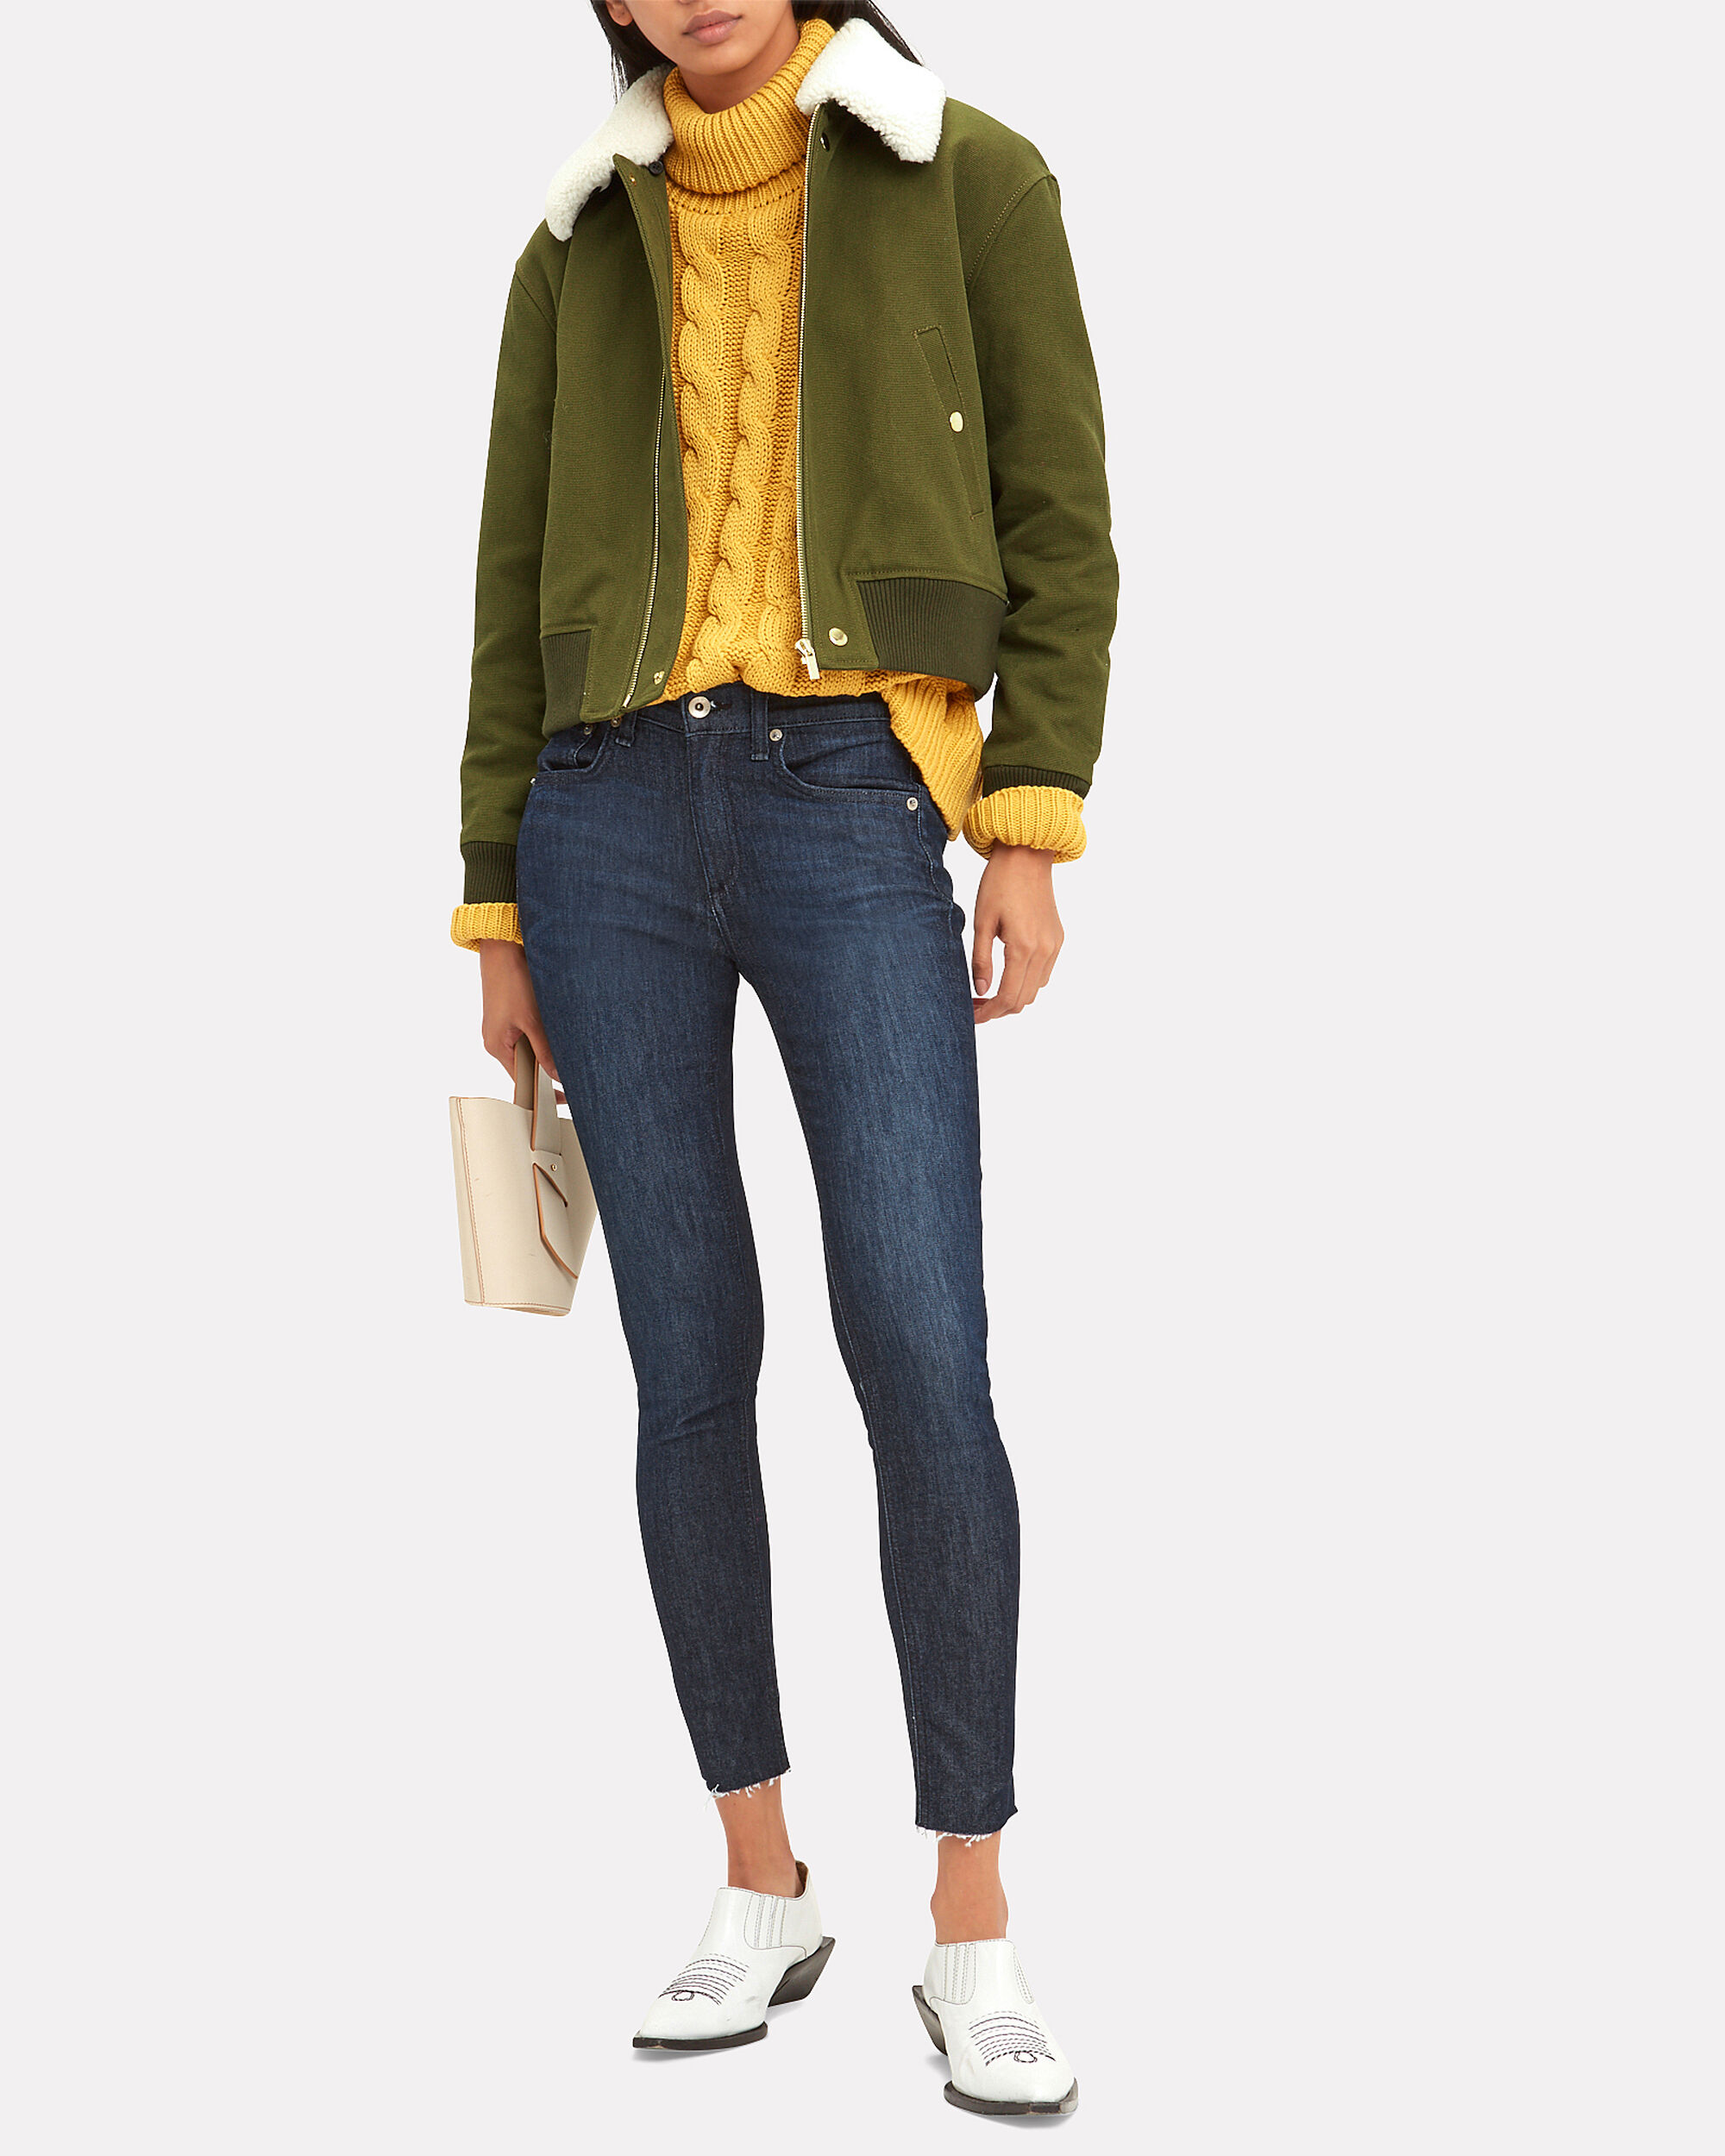 Shearling Collar Army Green Bomber Jacket, OLIVE/ARMY, hi-res